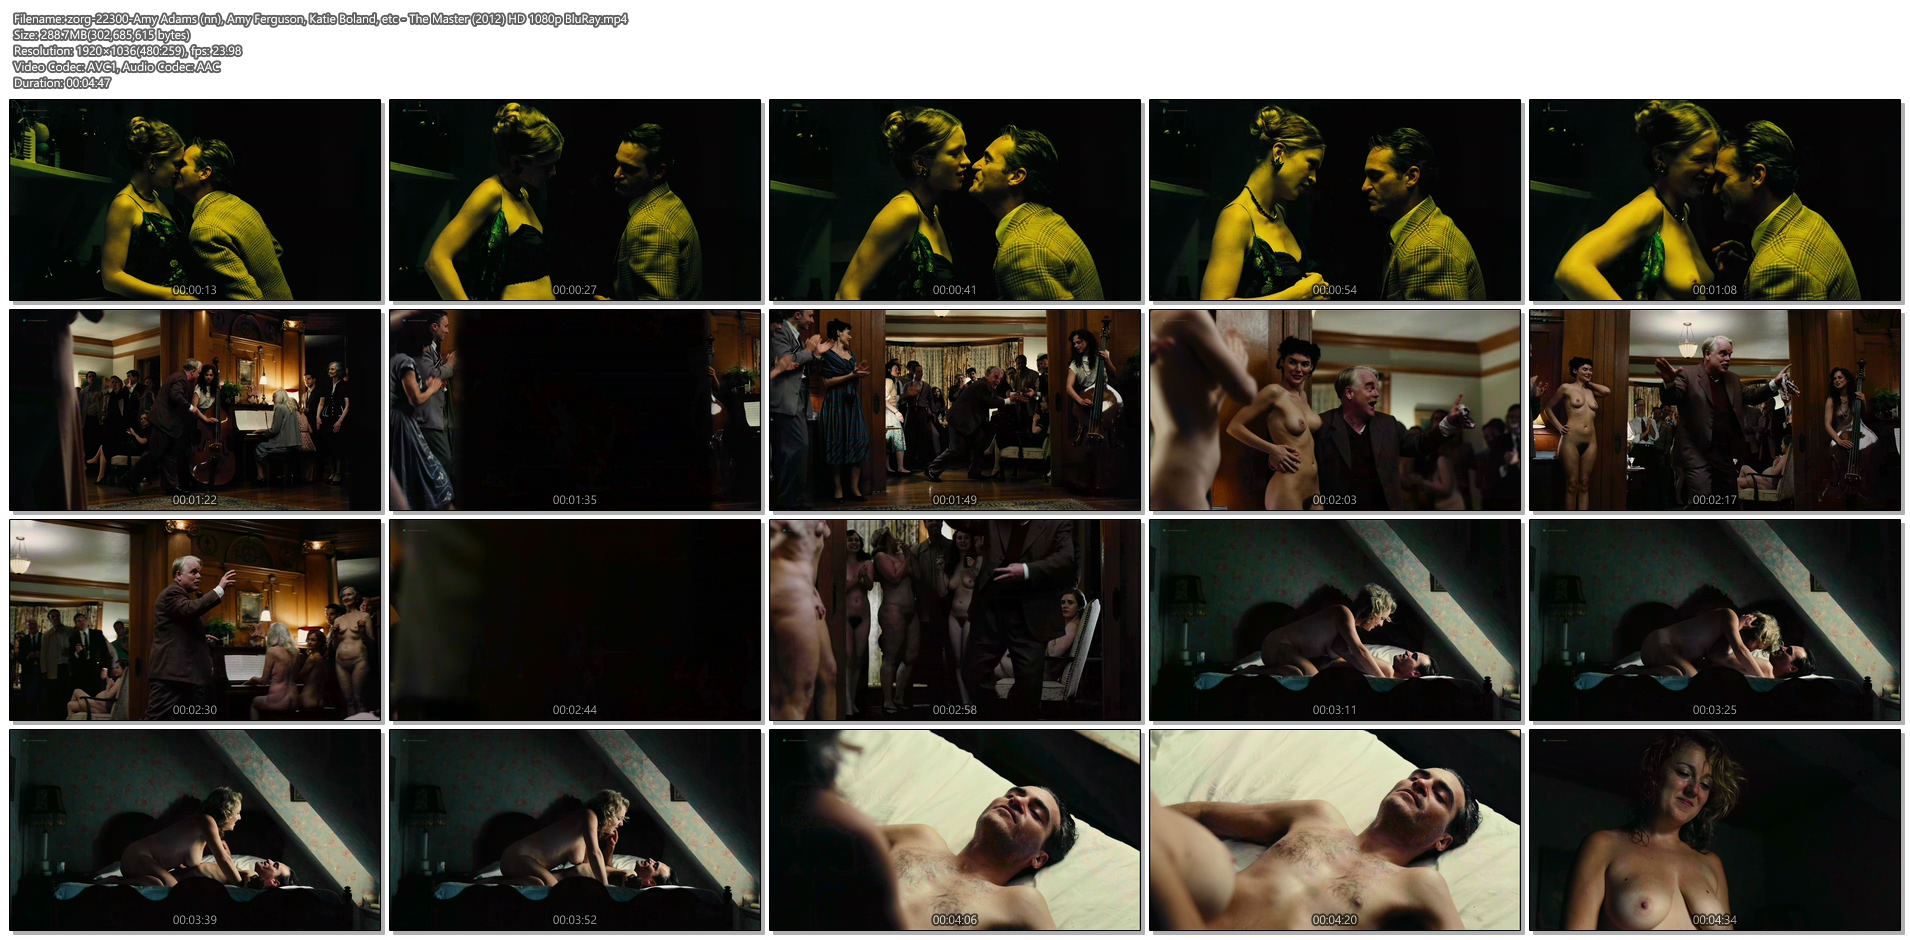 Amy Ferguson nude topless, Liz Clare, Katie Boland nude dancing Amy Adams nude covered and Jennifer Neala Page nude sex - The Master (2012) HD 1080p BluRay (8)